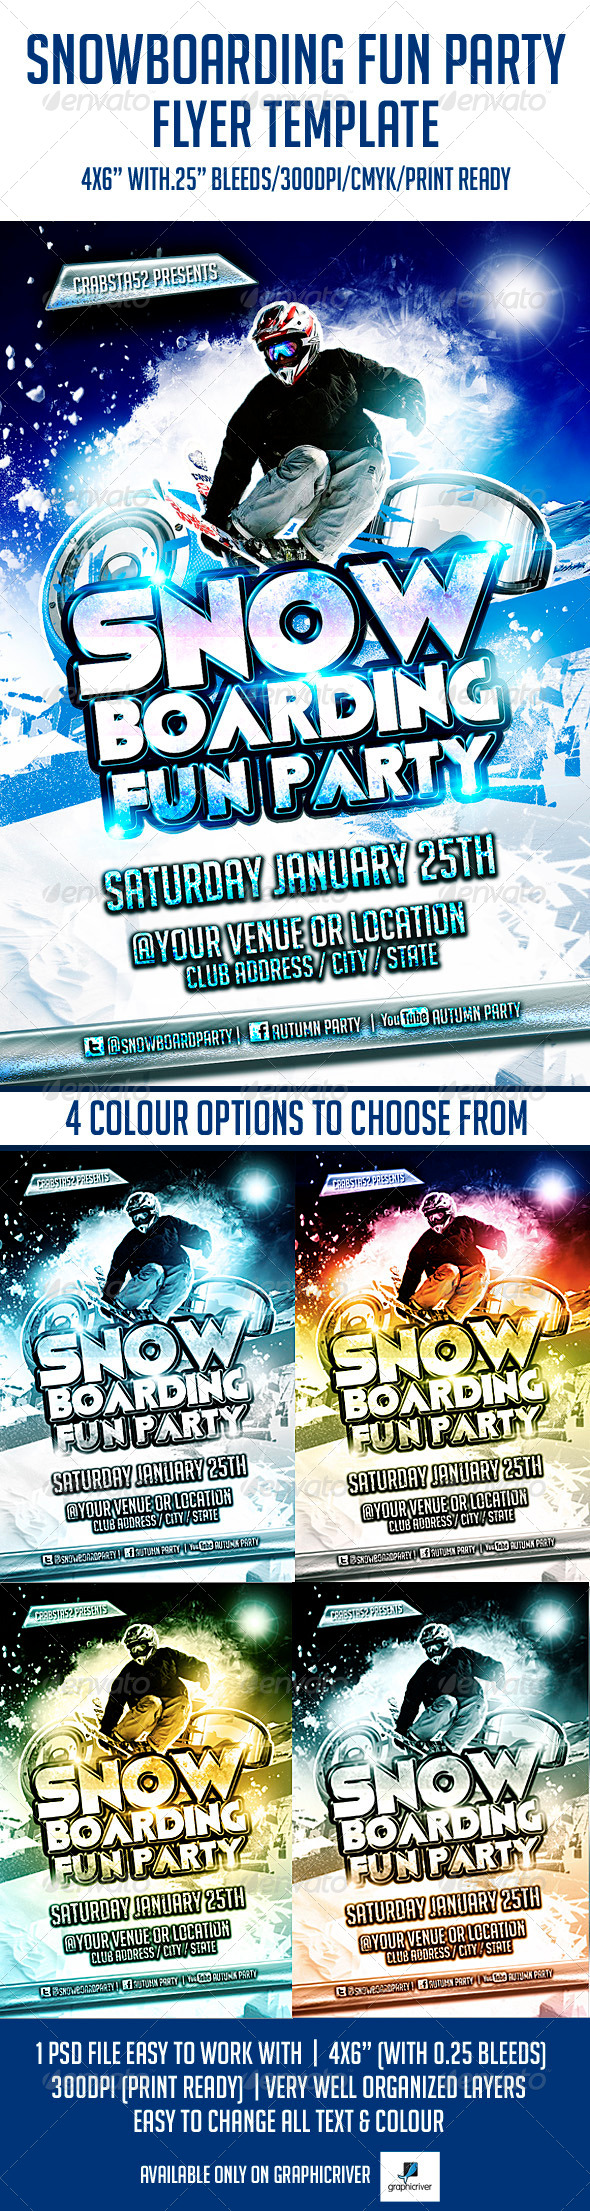 GraphicRiver Snowboarding Fun Party Flyer Template 6477232